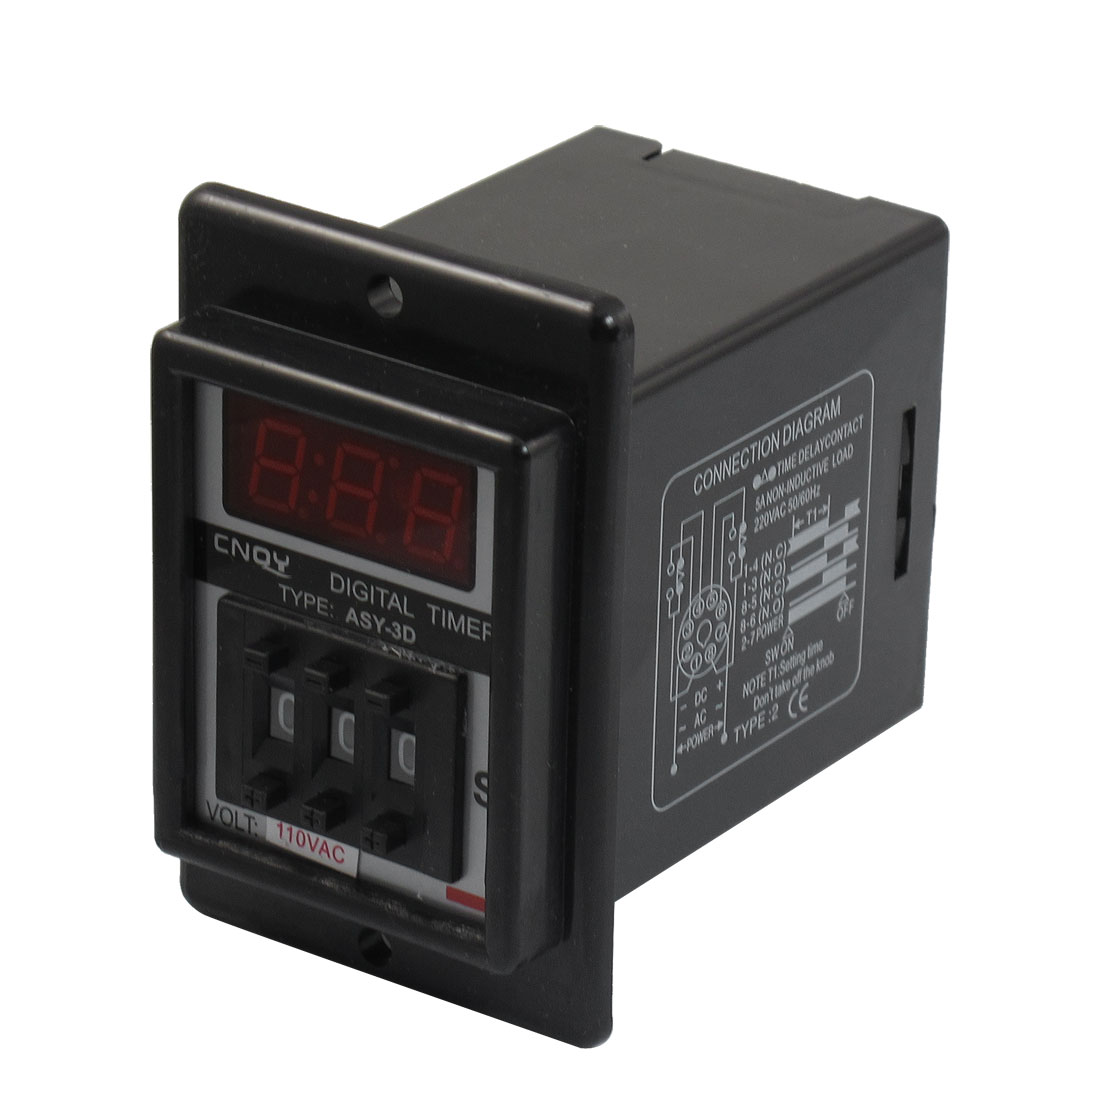 Black AC 110V Power on Delay Timer Time Relay 0.1-99.9 Second 8 Pins ASY-3D